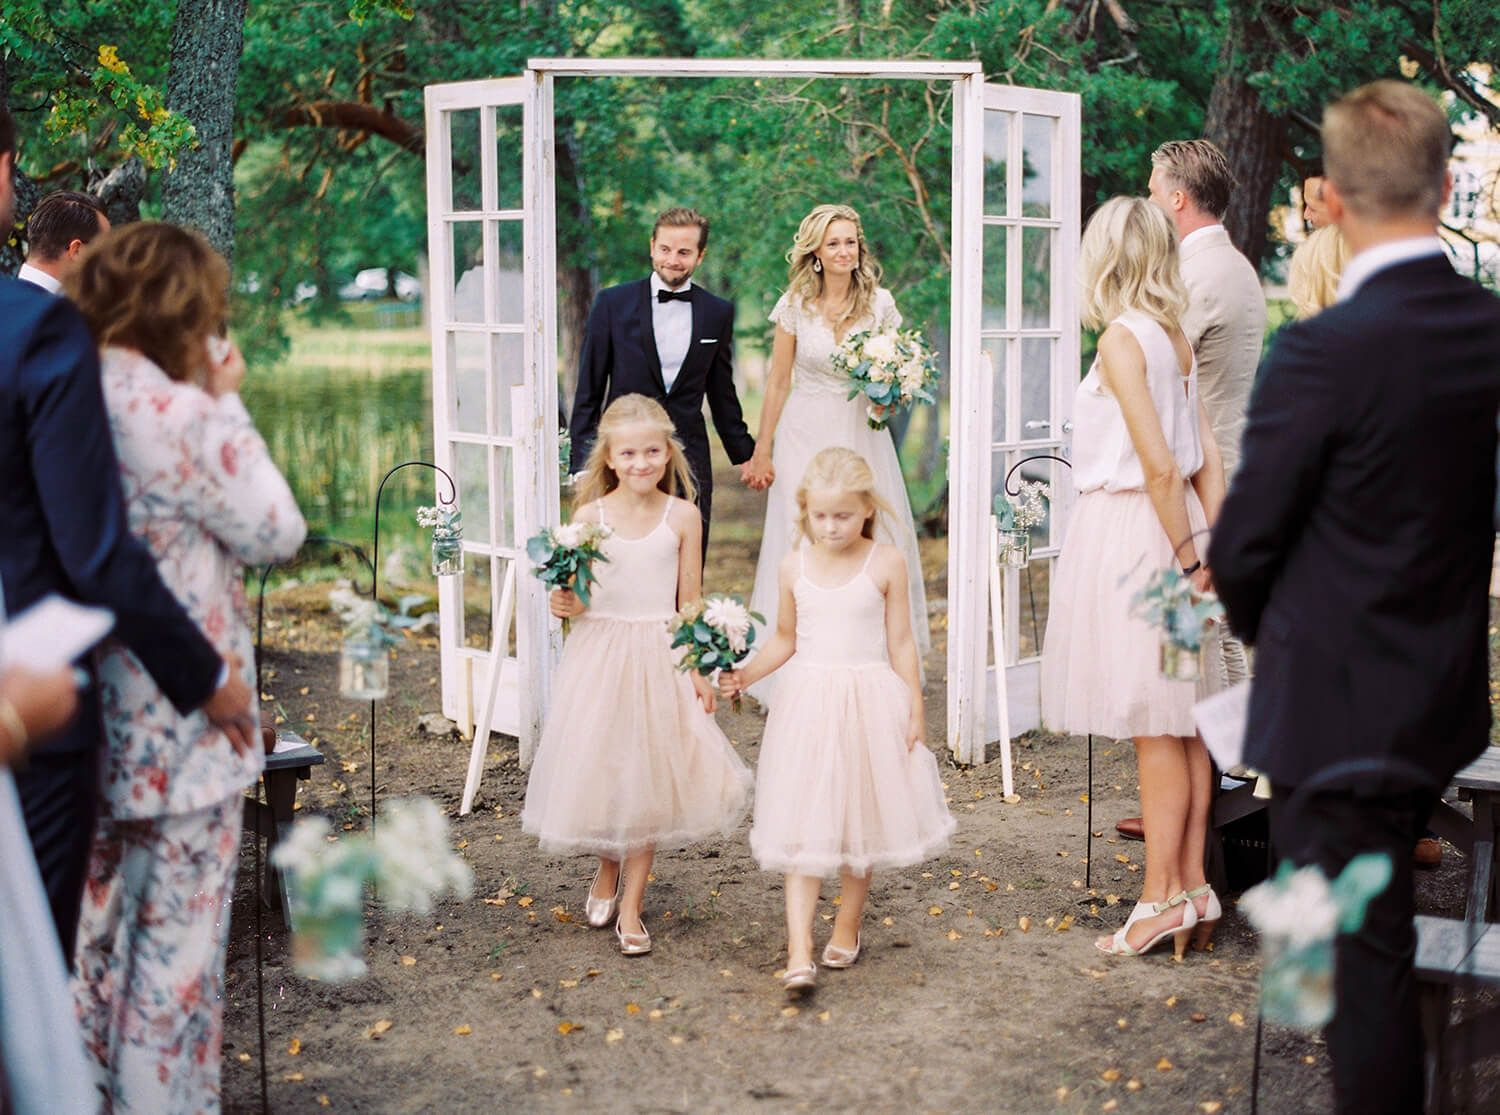 Swedish Wedding Traditions For Your Big Day 2 Brides Photography In 2020 Swedish Wedding Bride Photography Bride